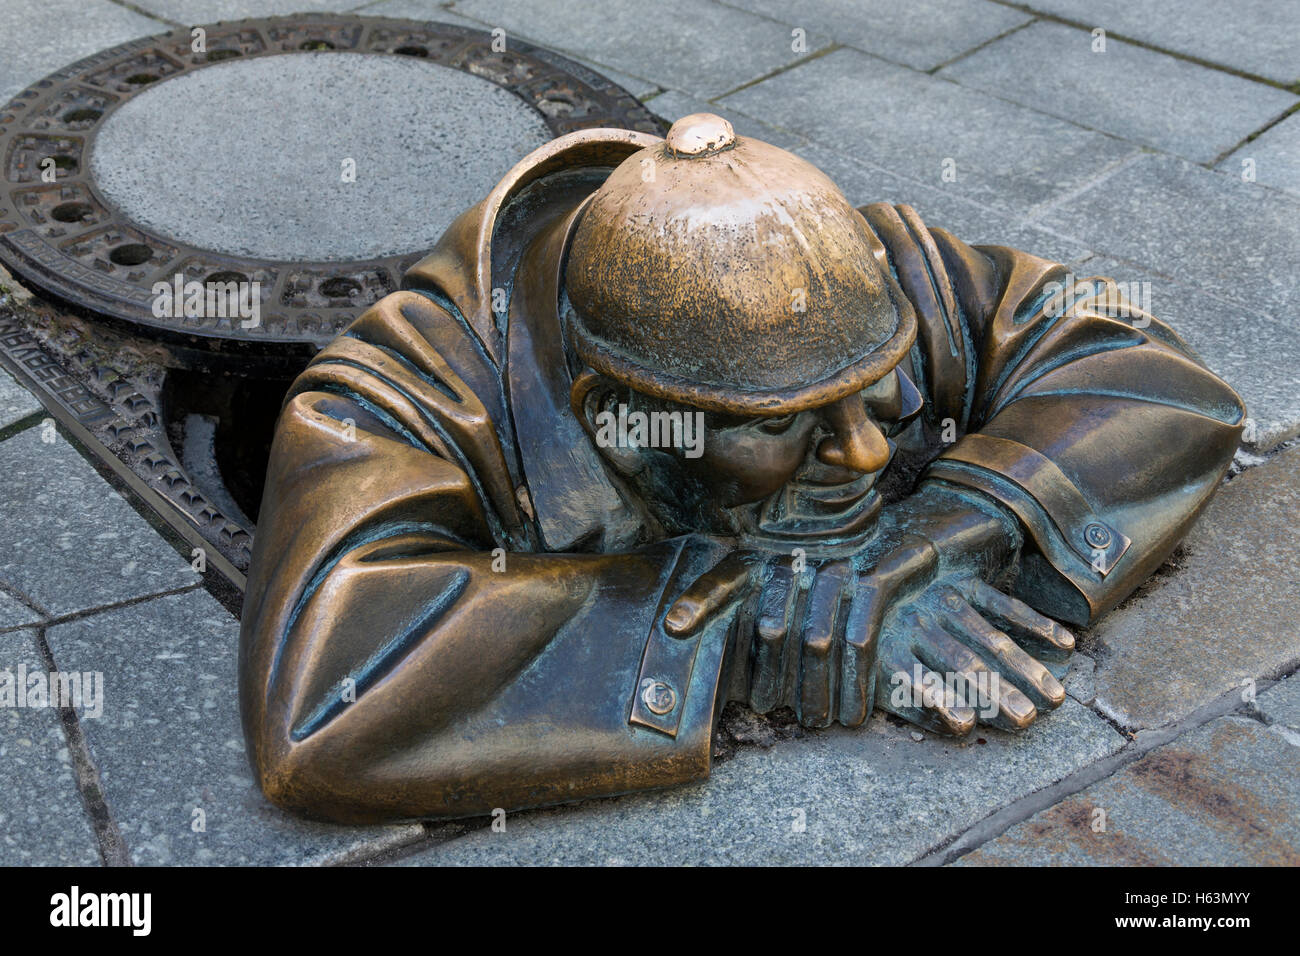 A bronze statue representing a street worker emerging from a manhole. Bratislava, Slovakia. - Stock Image